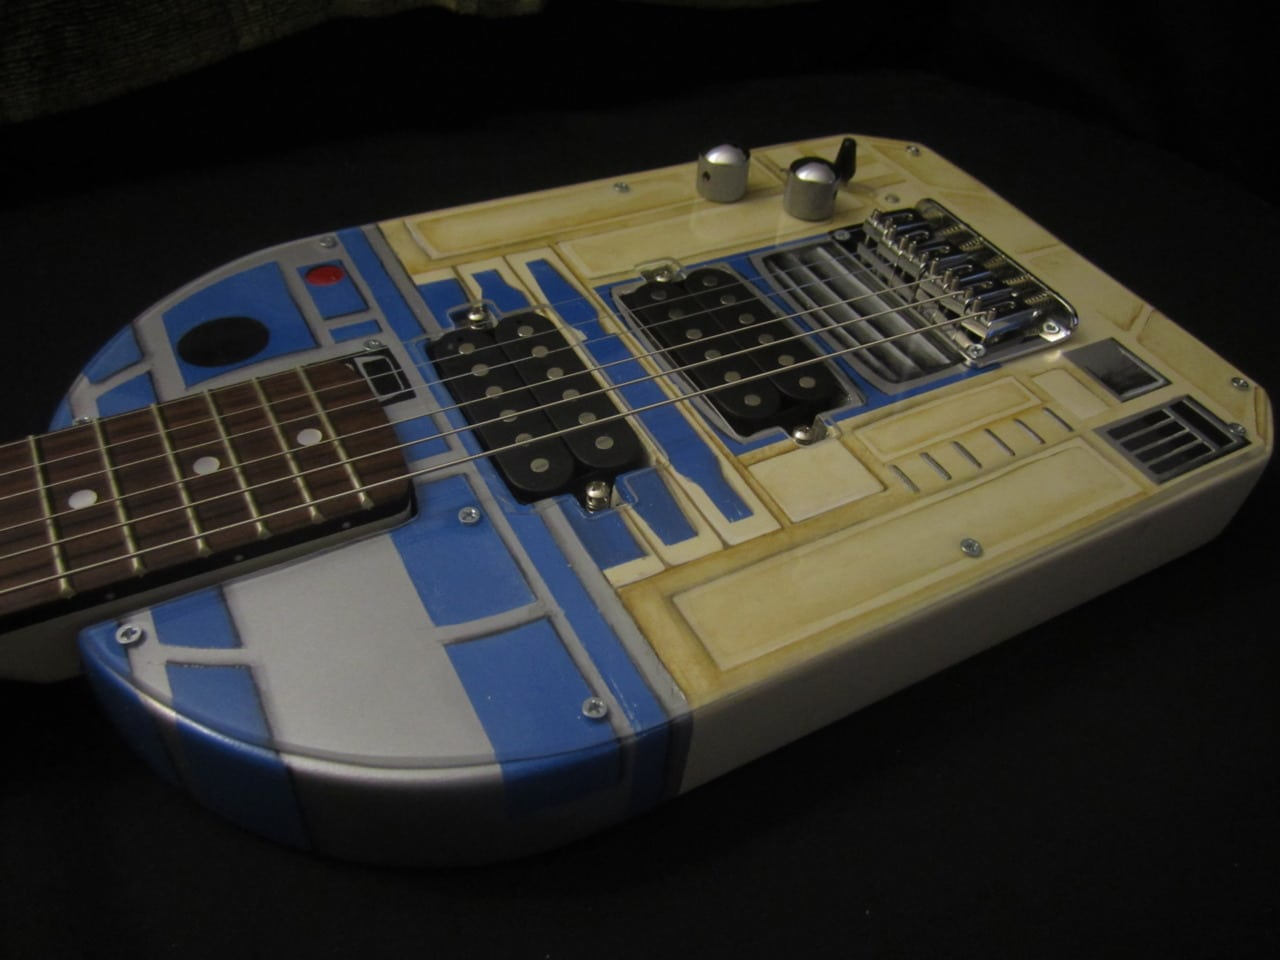 R2-D2 Guitar Build For The Sci-Fi Rockstar